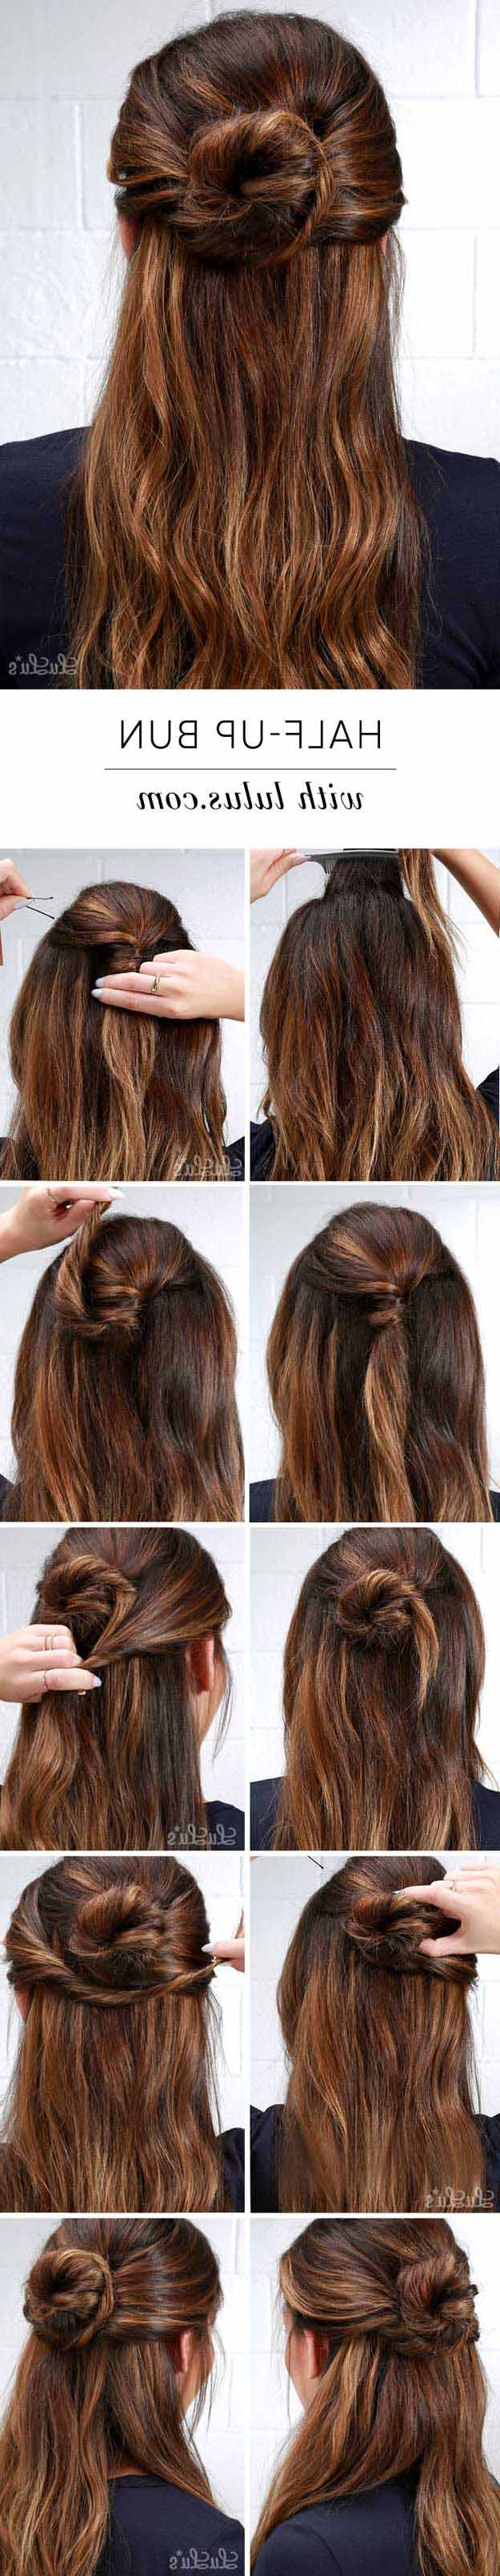 31 Amazing Half Up Half Down Hairstyles For Long Hair – The Goddess Pertaining To Well Known Cute Formal Half Updo Hairstyles For Thick Medium Hair (Gallery 12 of 20)